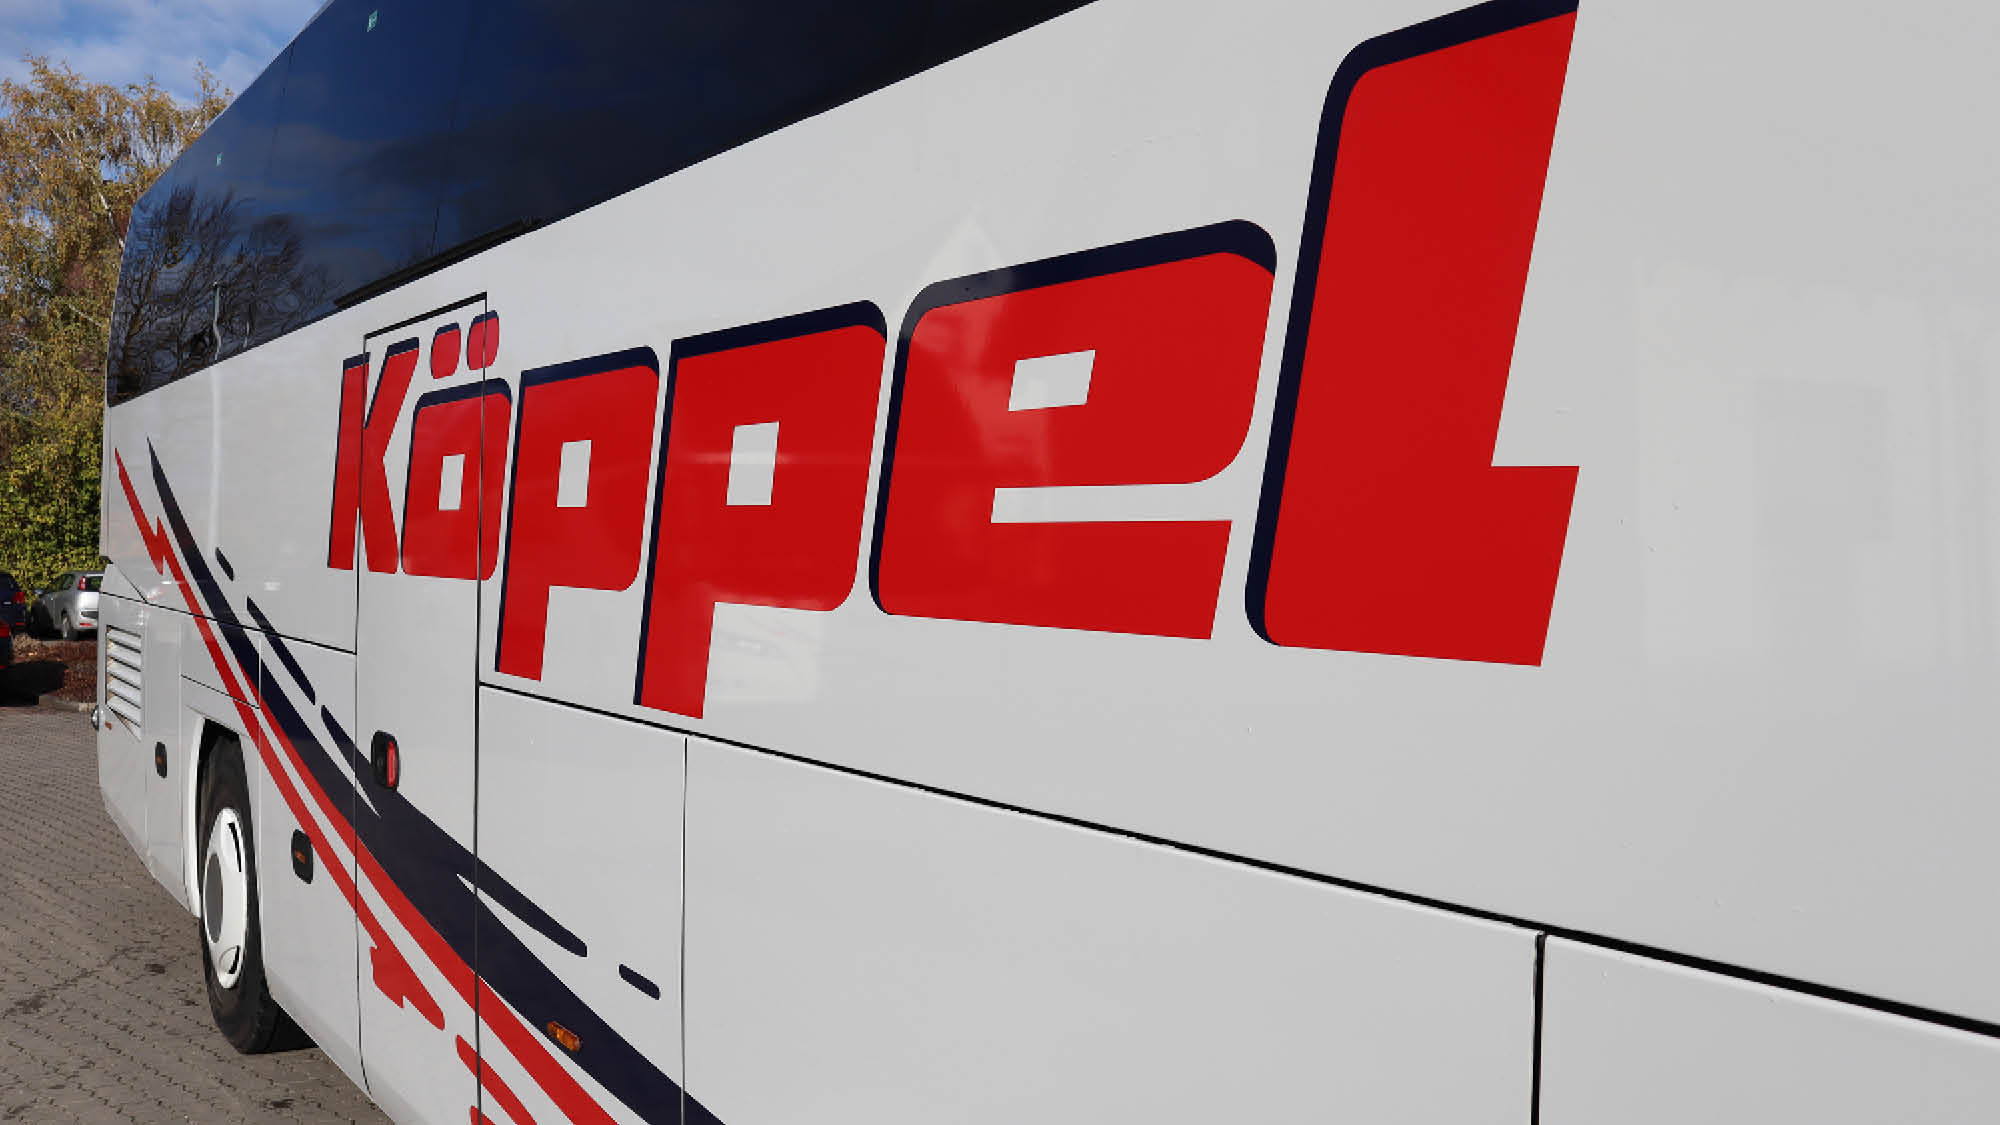 Köppel - Ellwangen - Website - Bus - 2019-12 - 10